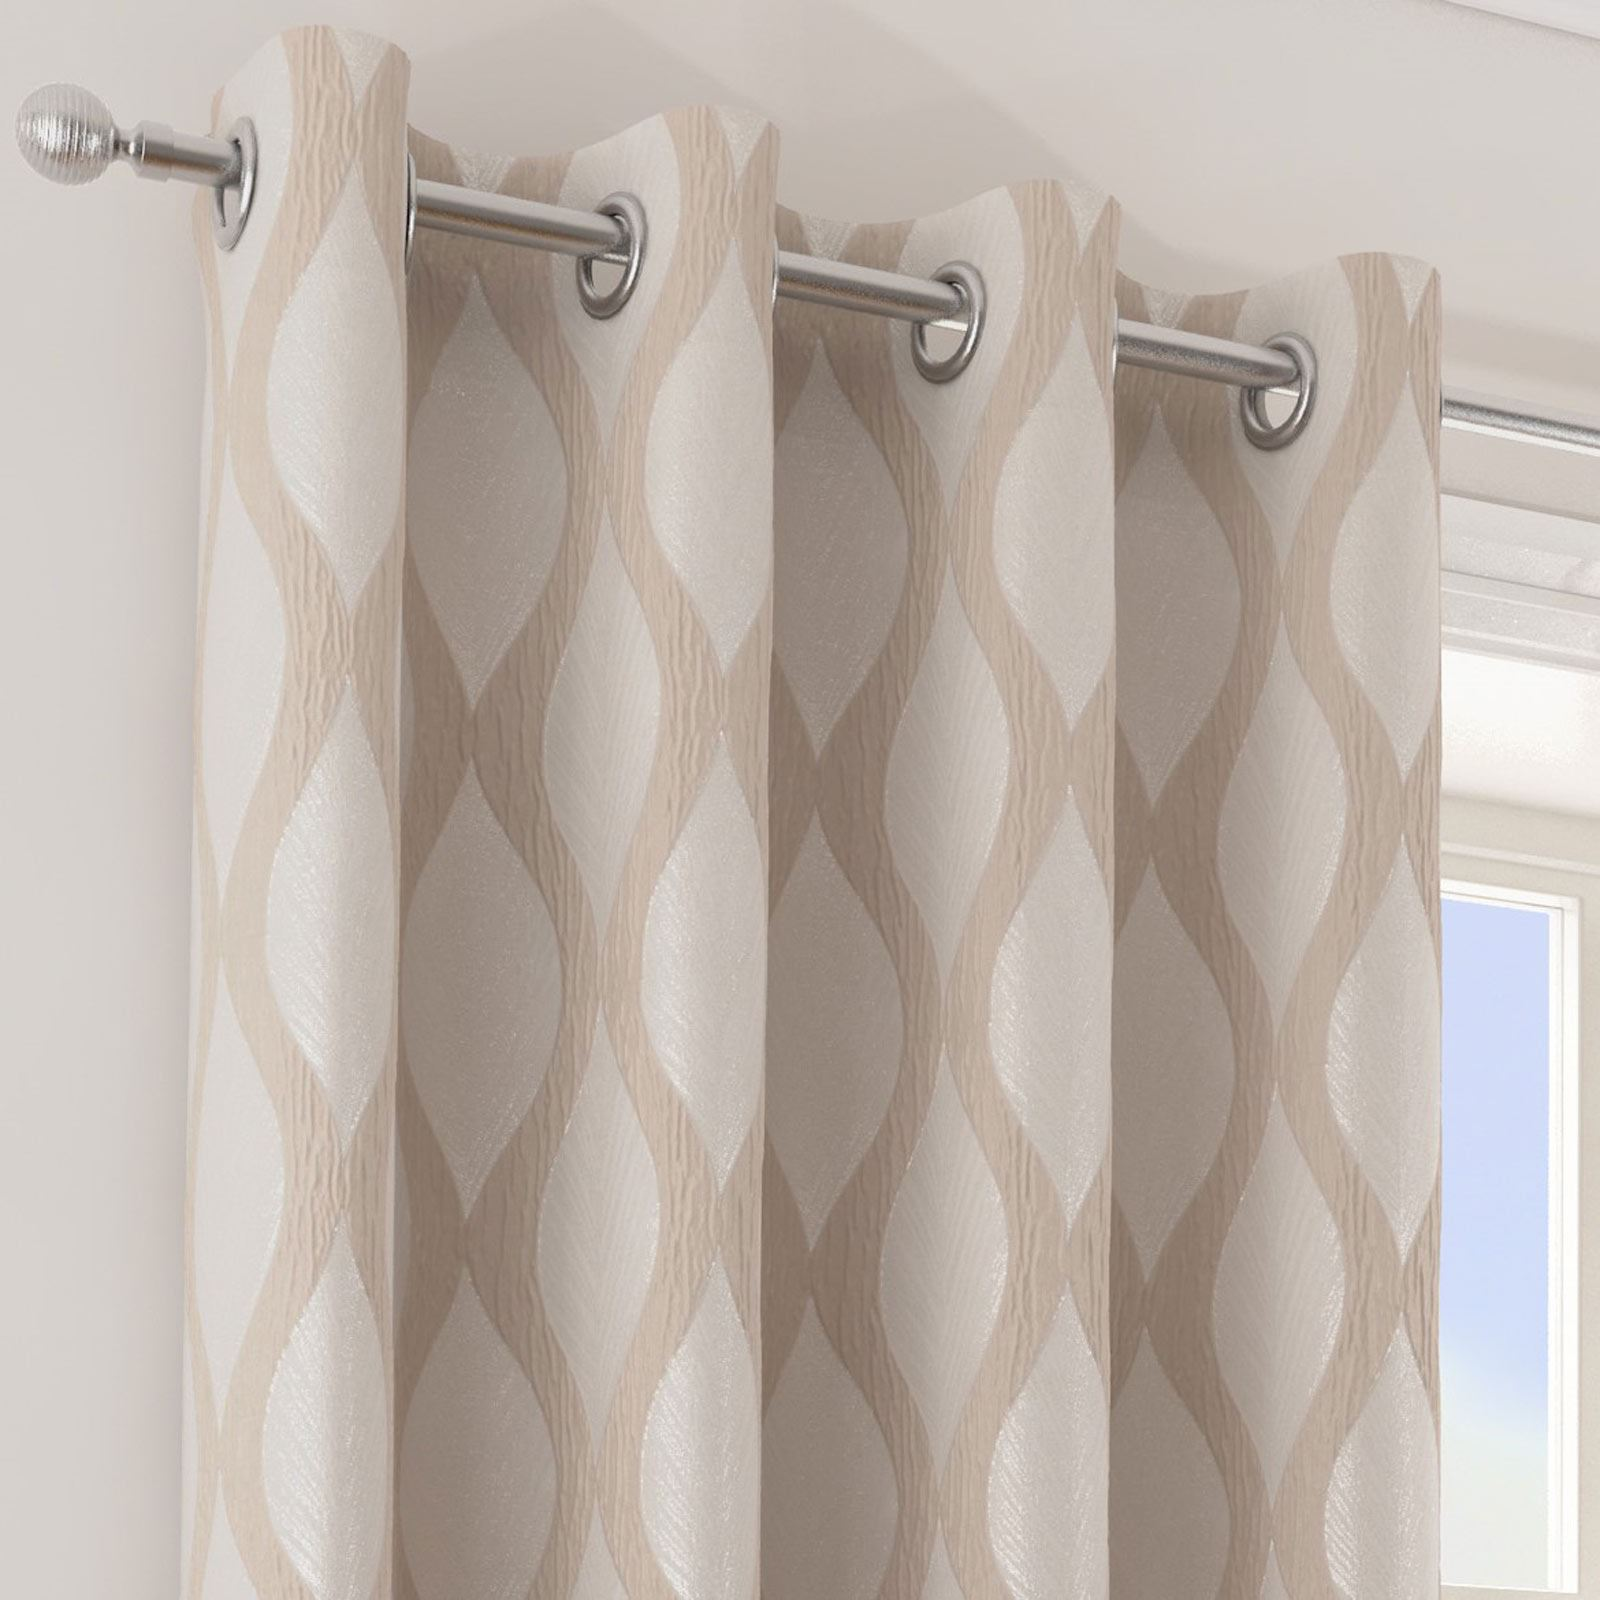 Deco-Lined-Eyelet-Curtains-Retro-Wave-Metallic-Sheen-Ring-Top-Curtain-Pairs